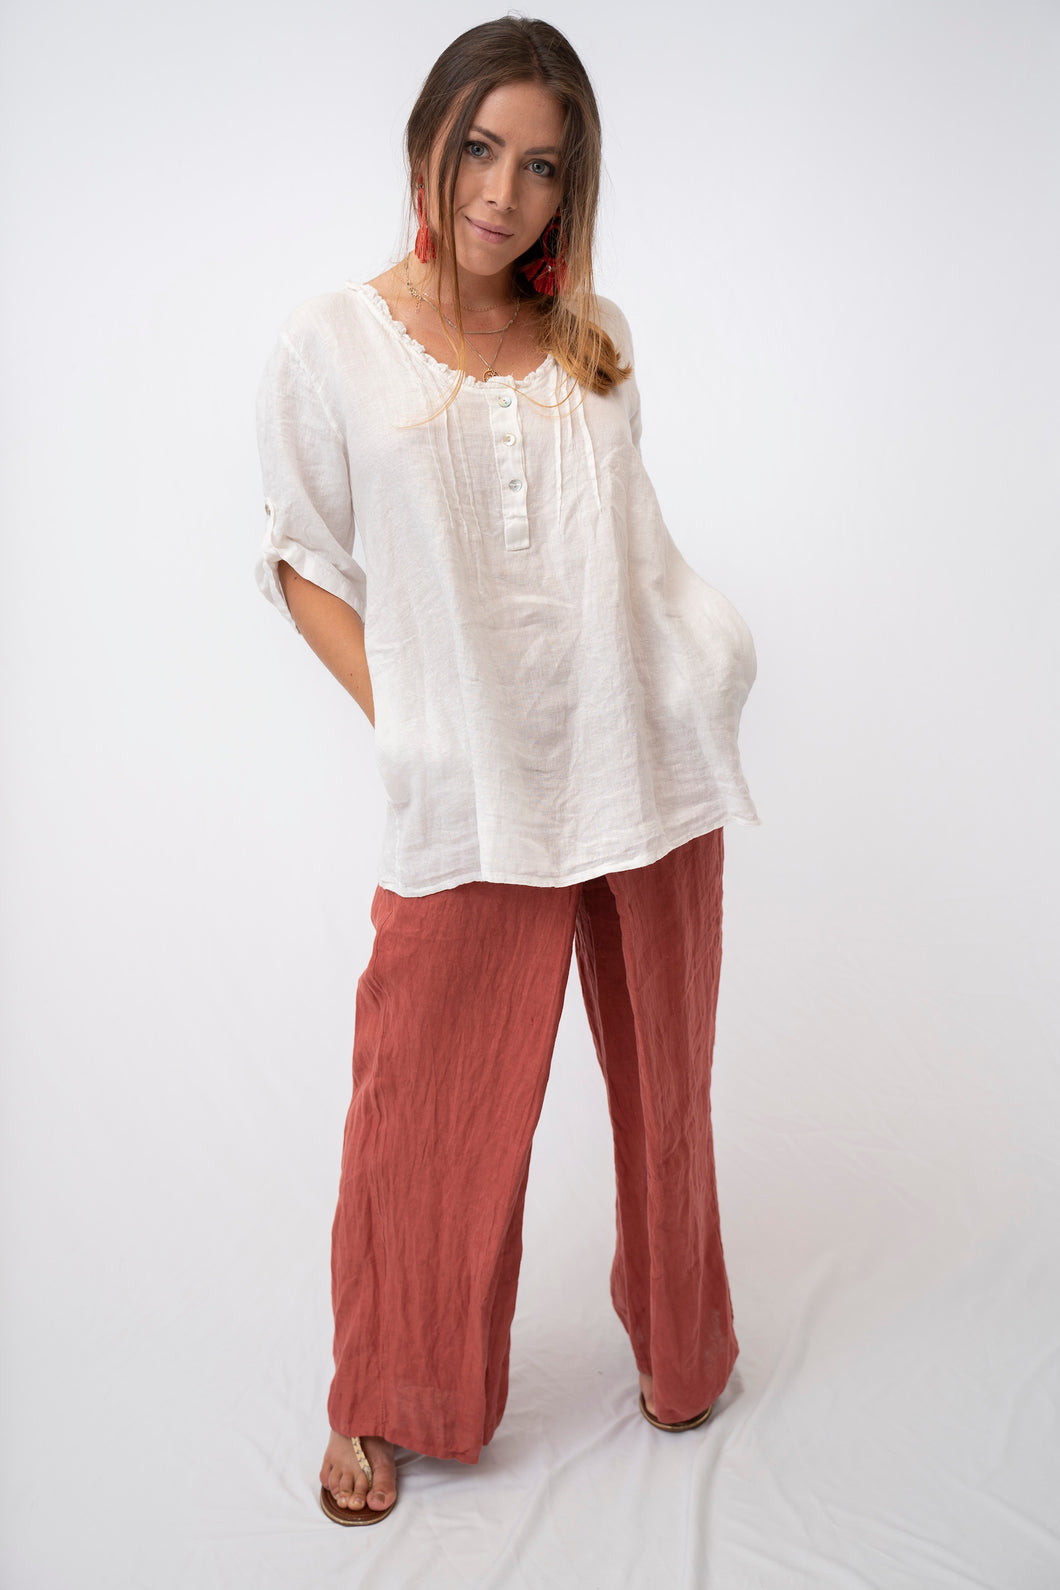 Romantic Linen Top With Pockets.